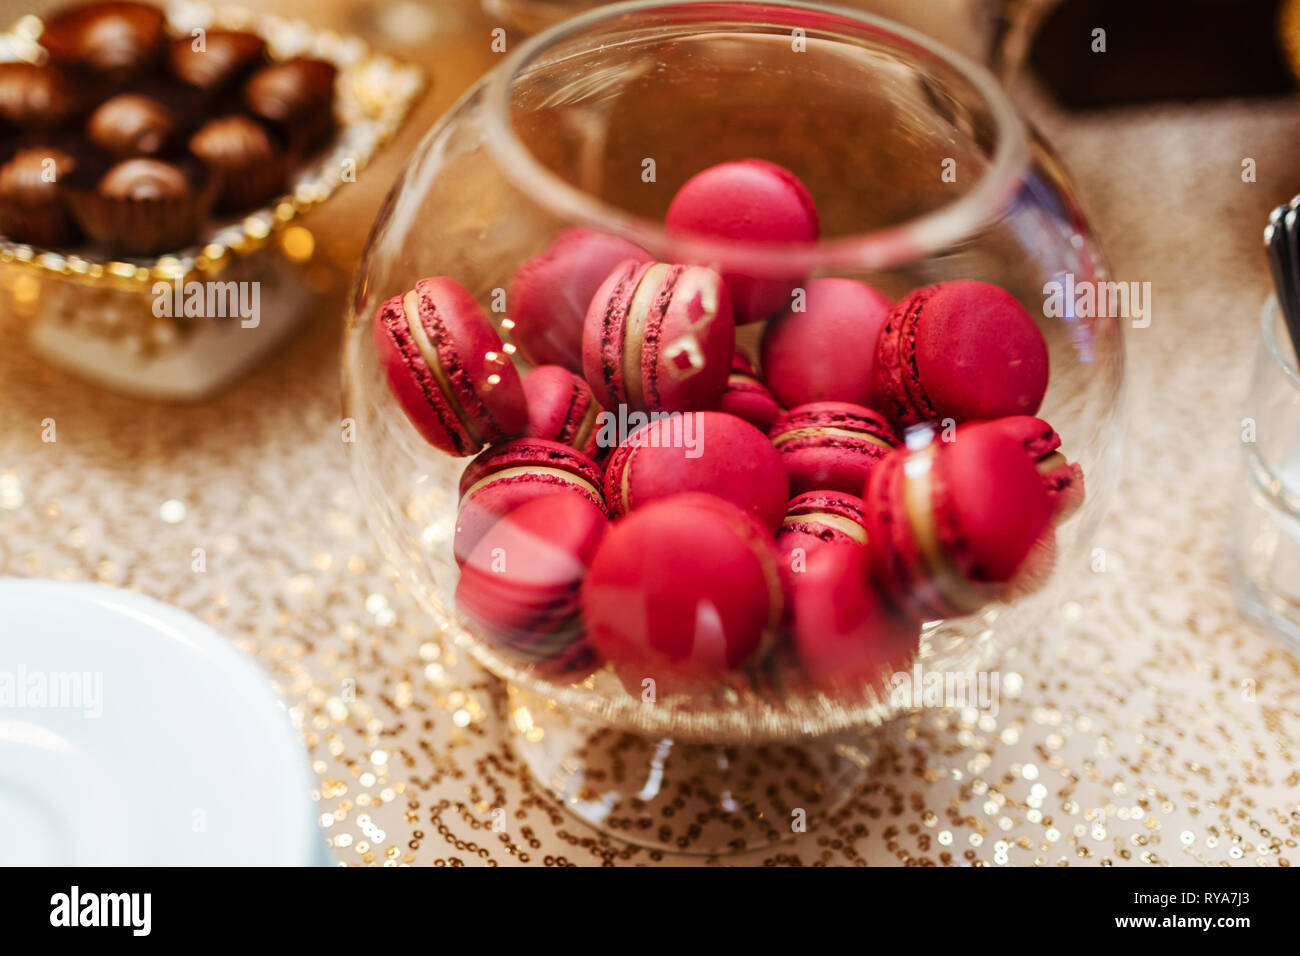 Swell Colorful Macarons Stand In Round Transparent Weight As Part Complete Home Design Collection Epsylindsey Bellcom